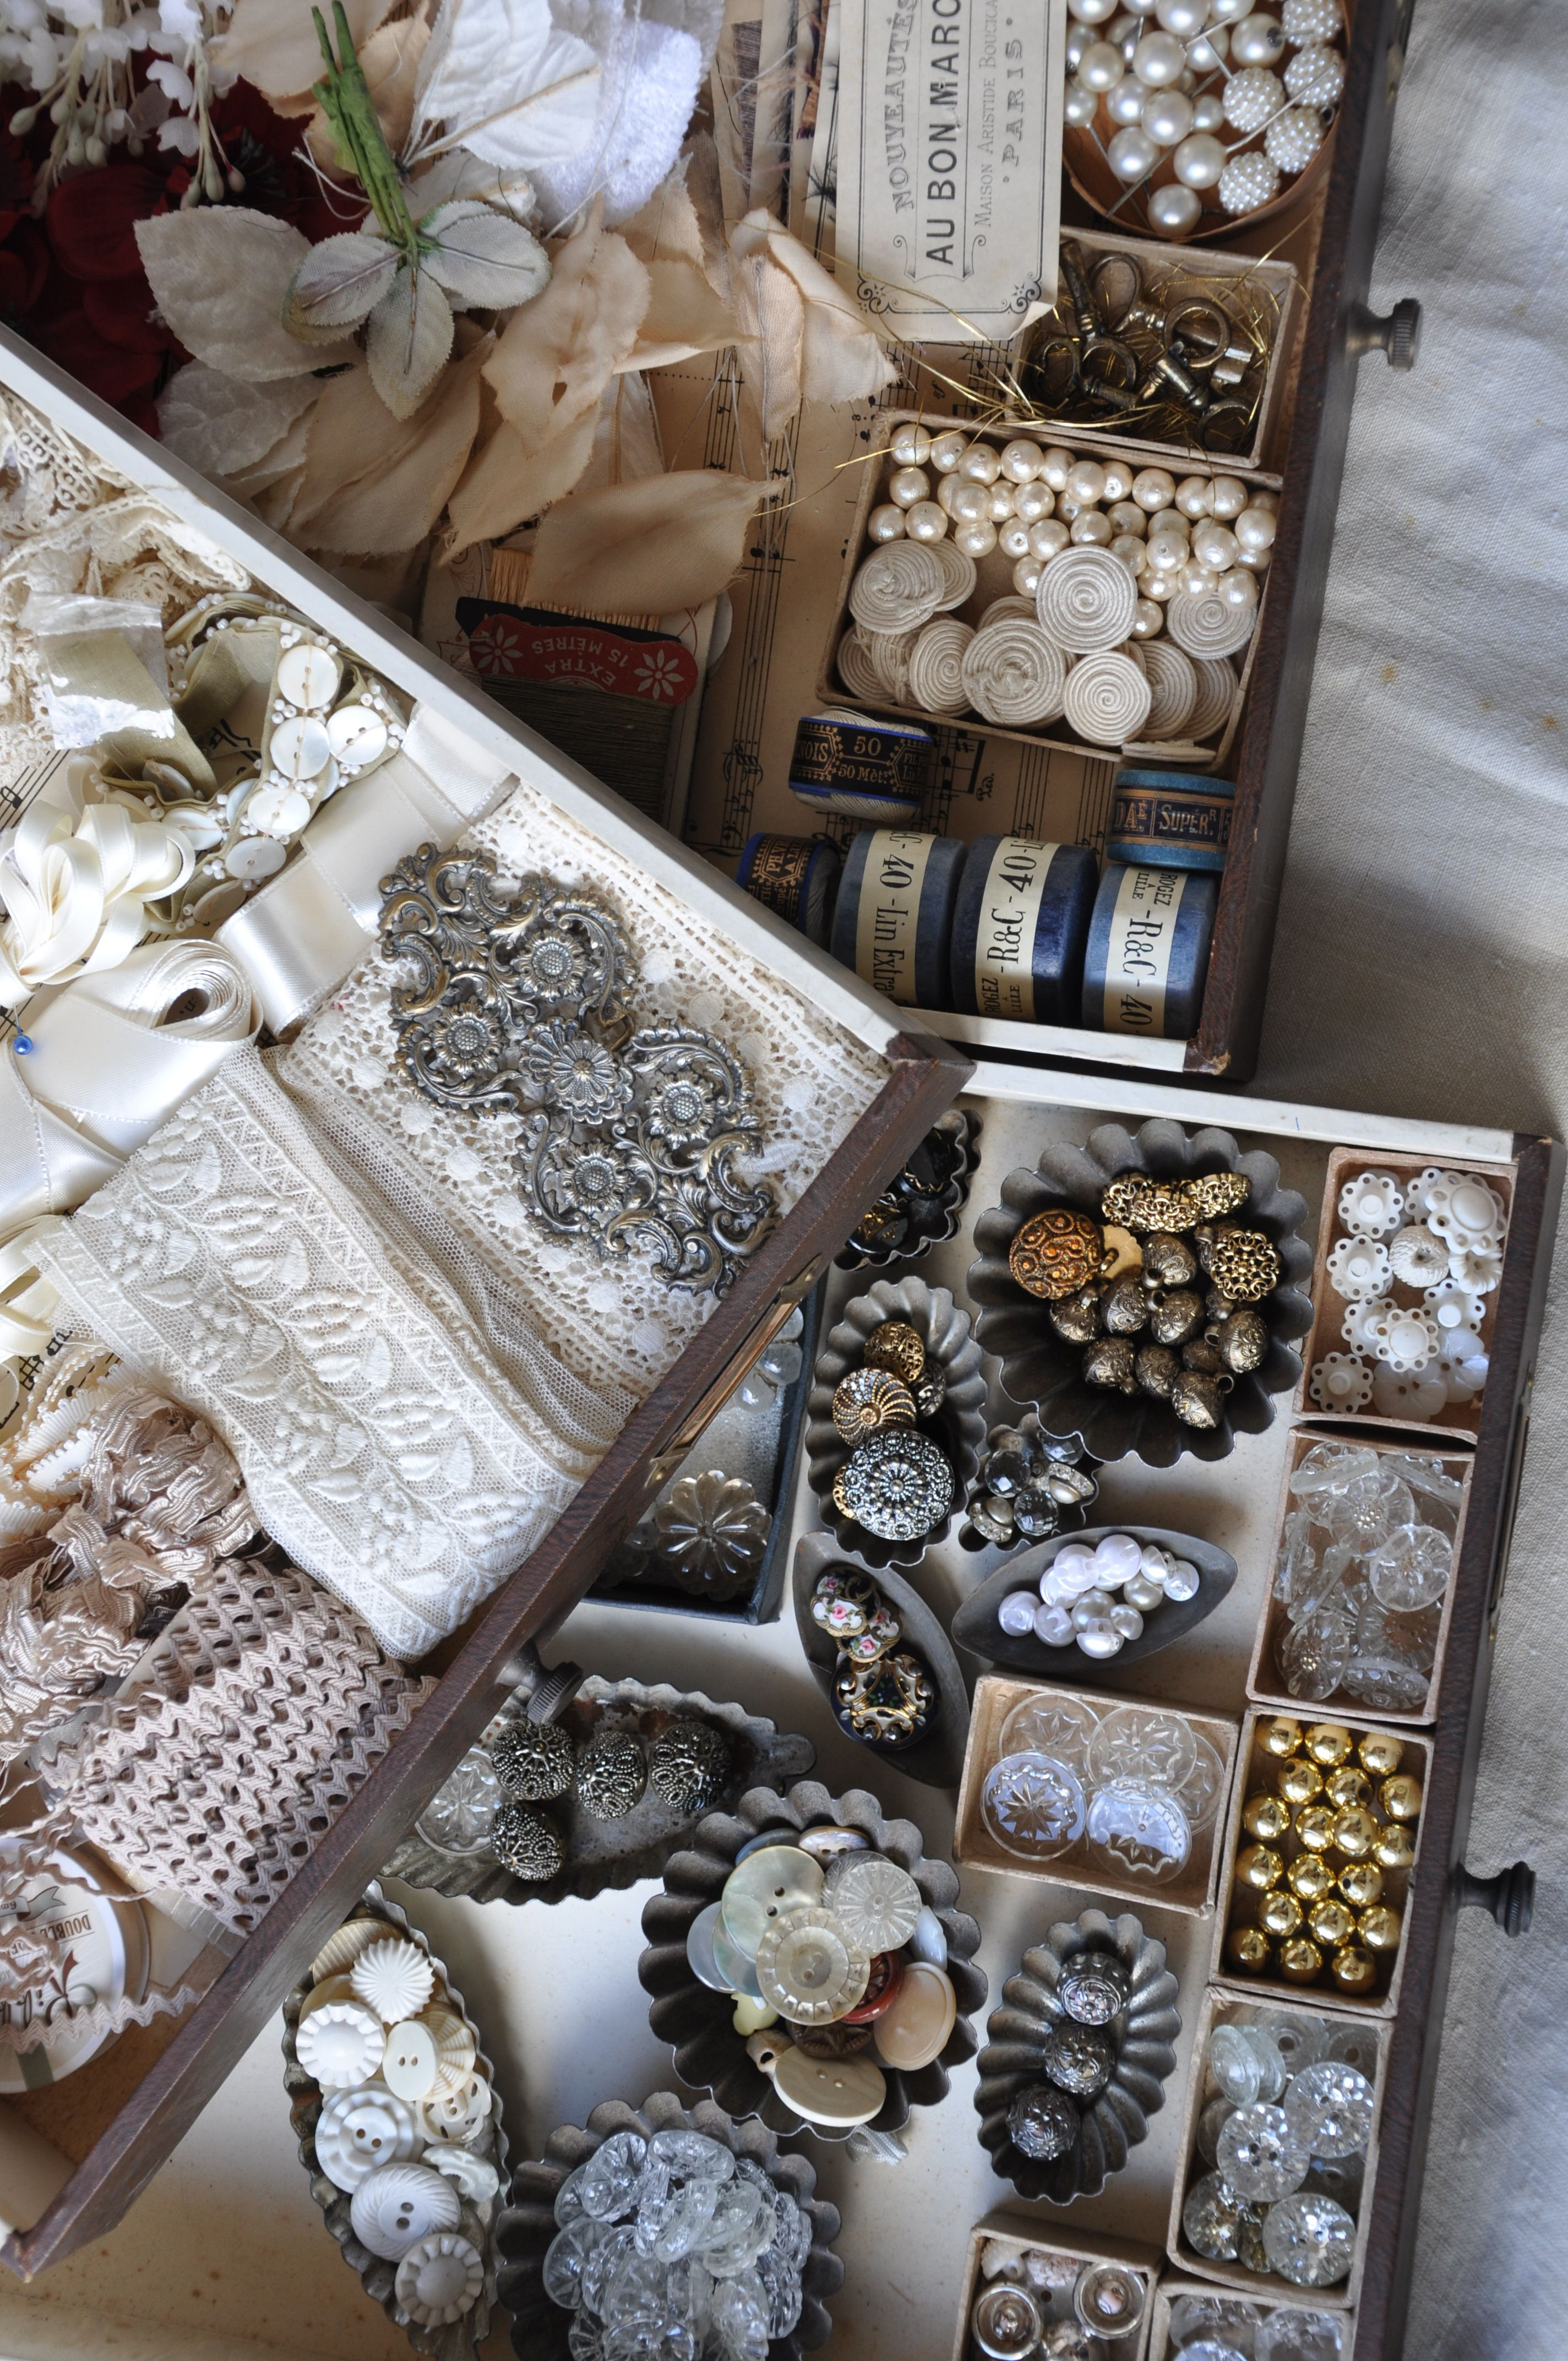 Antique French buttons, lace and accessories from my private collection. Similar can be found in our shop Lily Pond